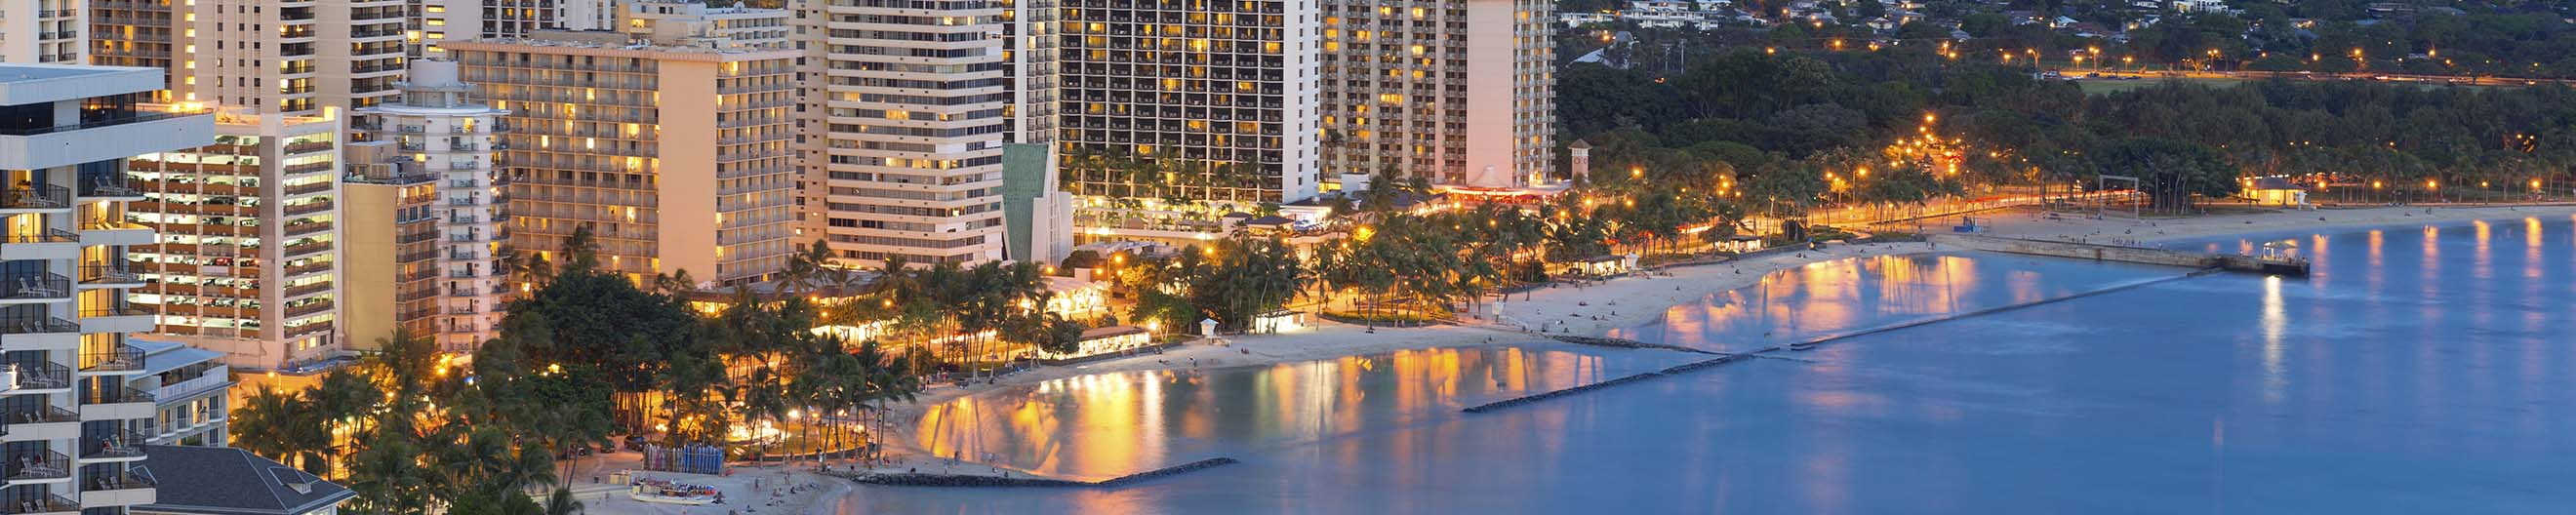 4 Star Hotels in Honolulu - Four Star Hotels From $162 | Travelocity